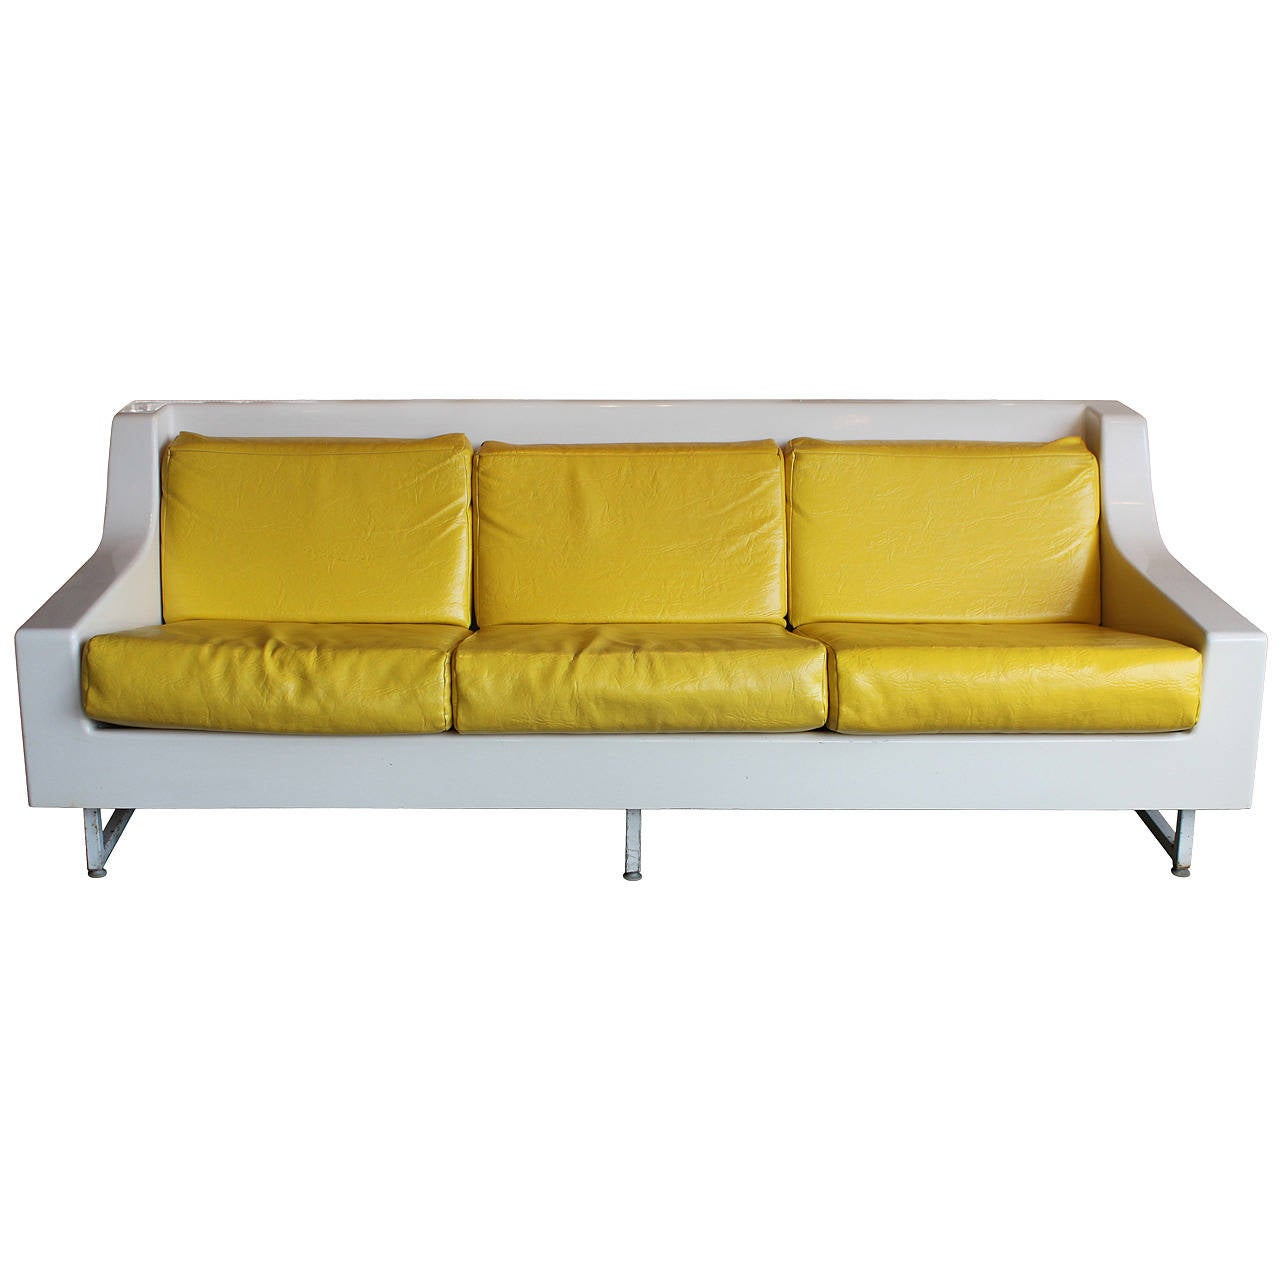 Modern outdoor or indoor sofa for sale at 1stdibs for Outdoor sectional sofa for sale